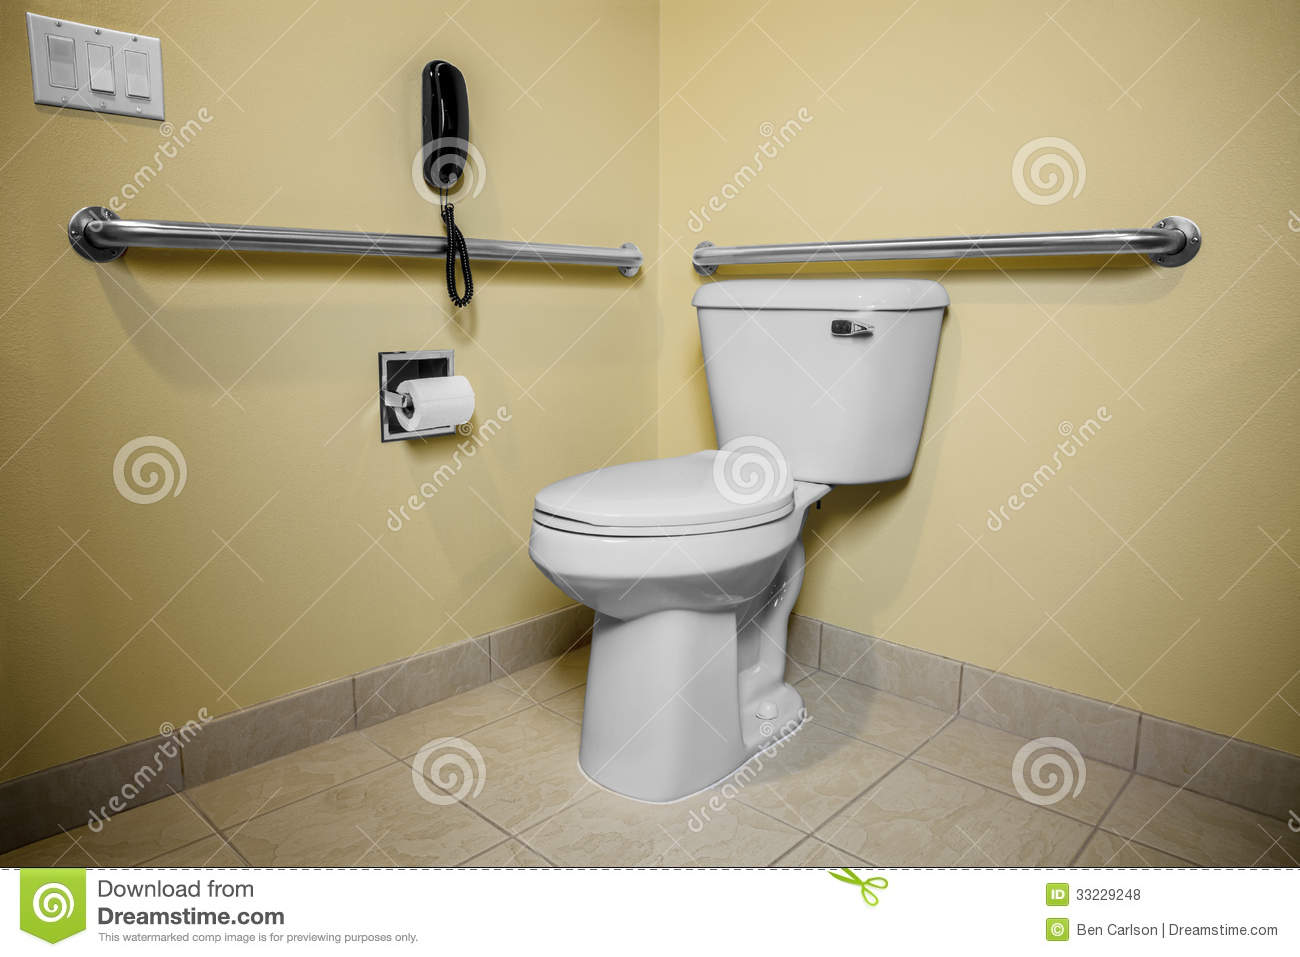 Handicap Toilet Phone Stock Photo Image Of Handicap - Bathroom toilet handles